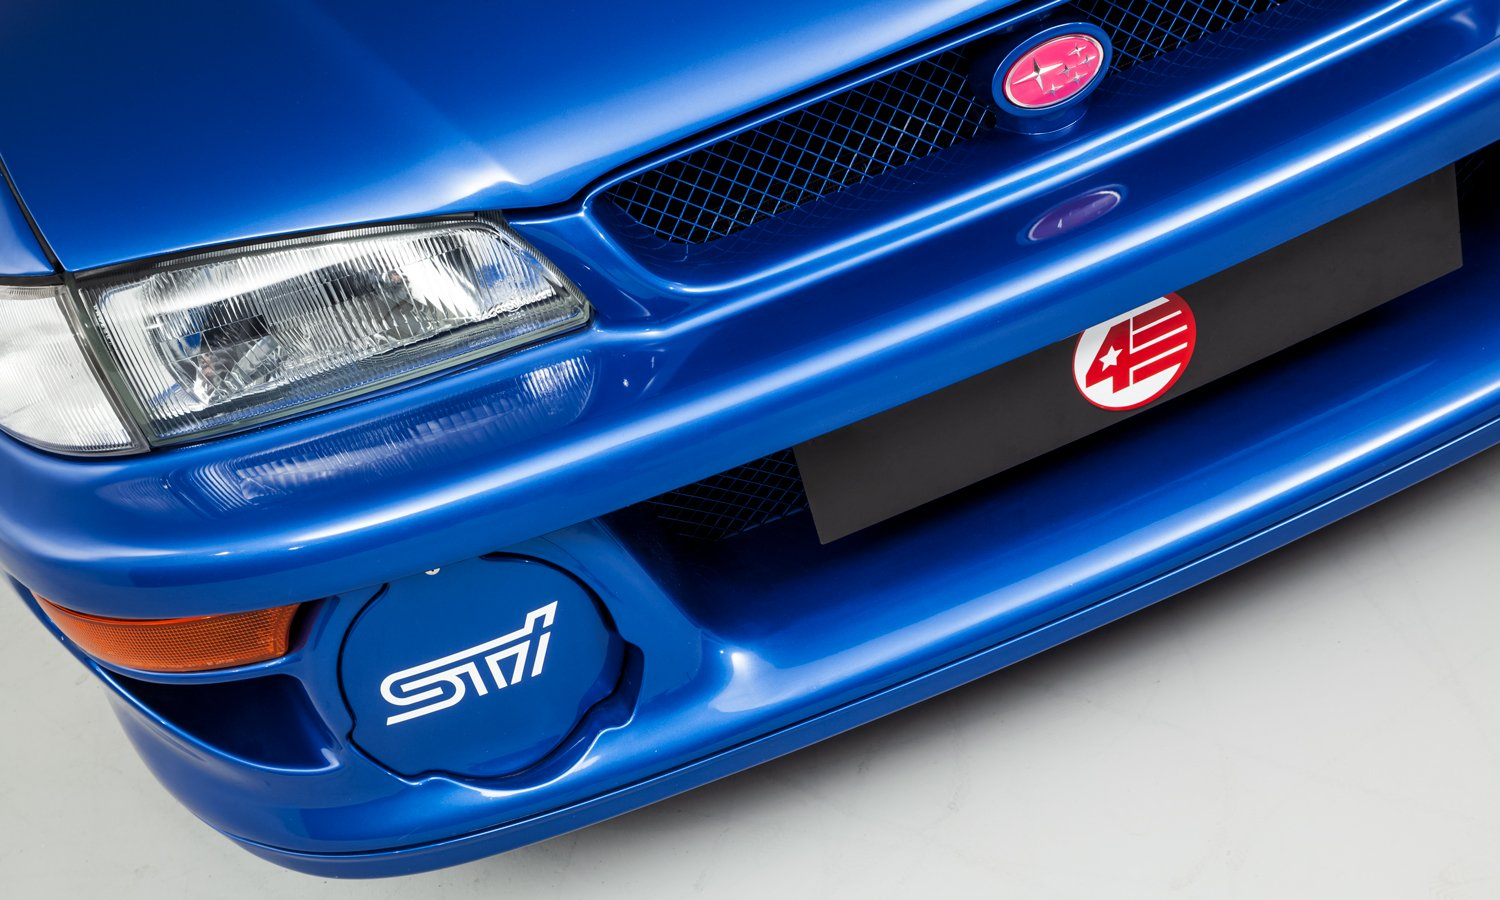 Subaru-Impreza-22B-STi-1998-for-sale-2